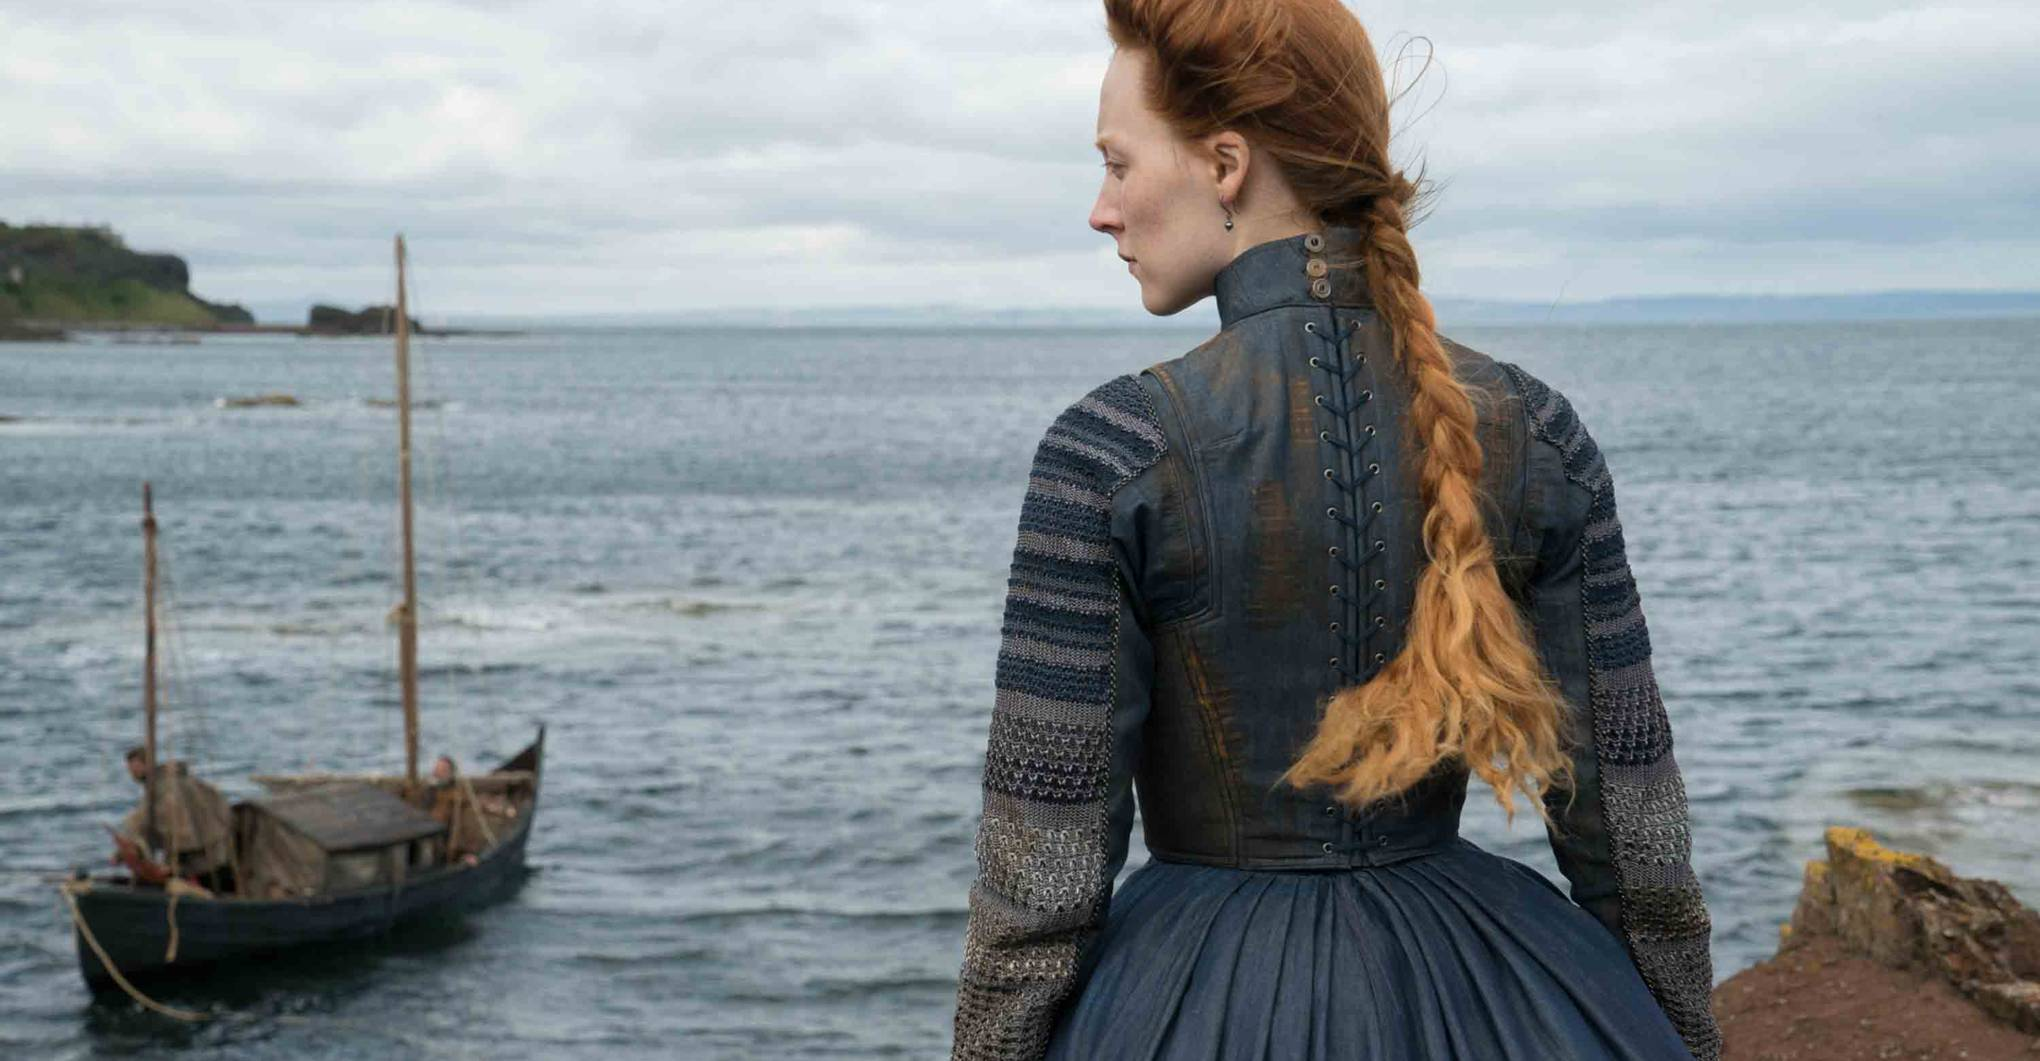 Where was 'Mary Queen of Scots' filmed?